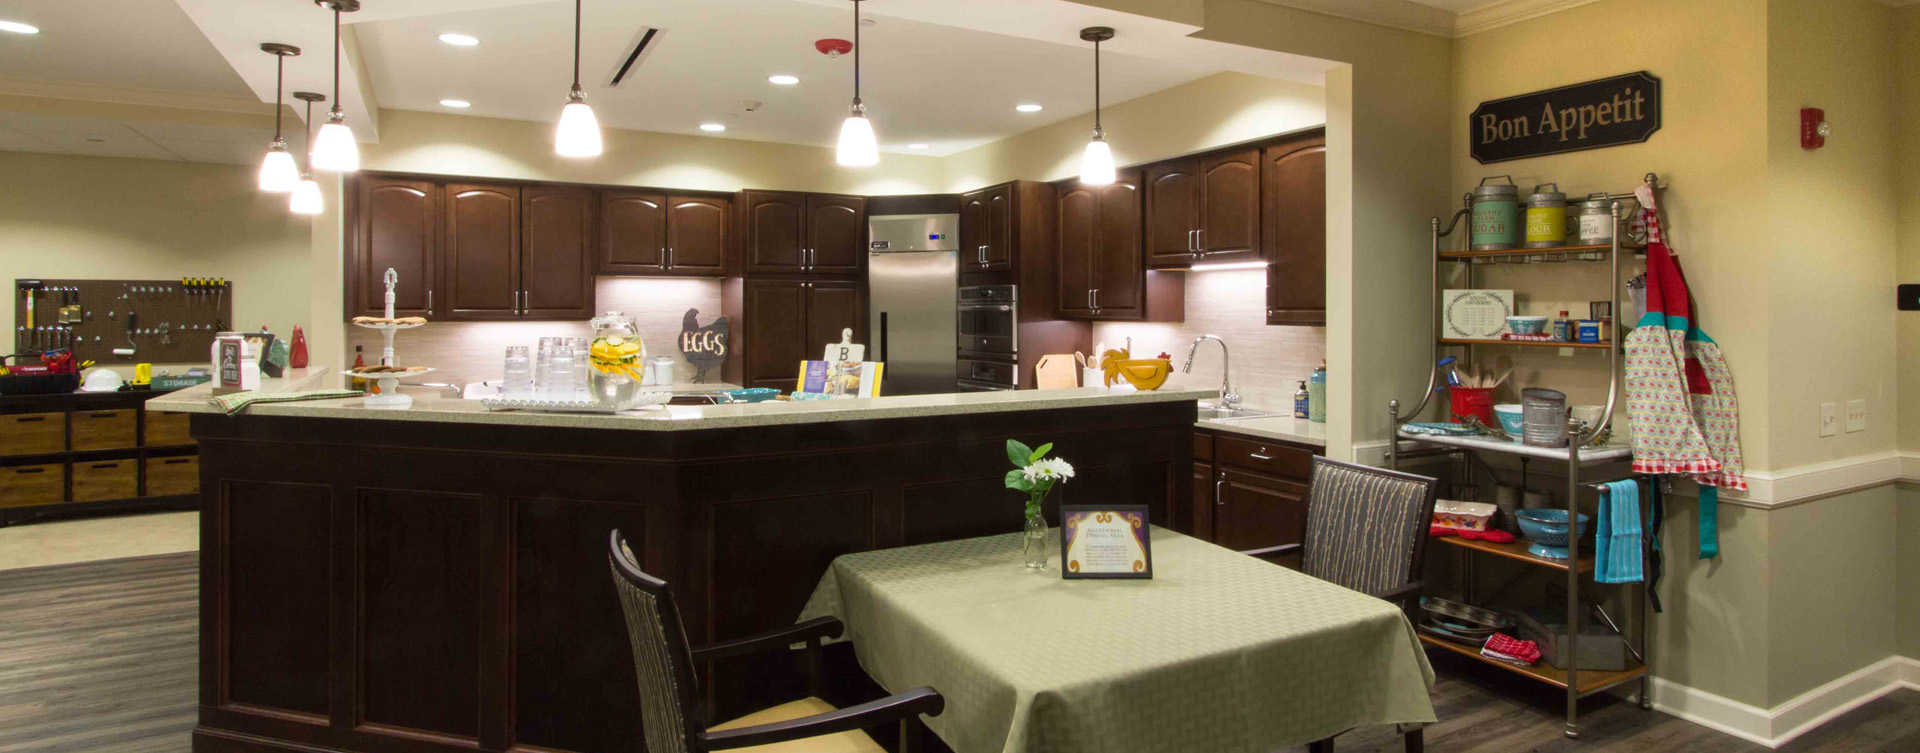 Mary B's country kitchen evokes a sense of home and reconnects residents to past life skills at Bickford of Gurnee